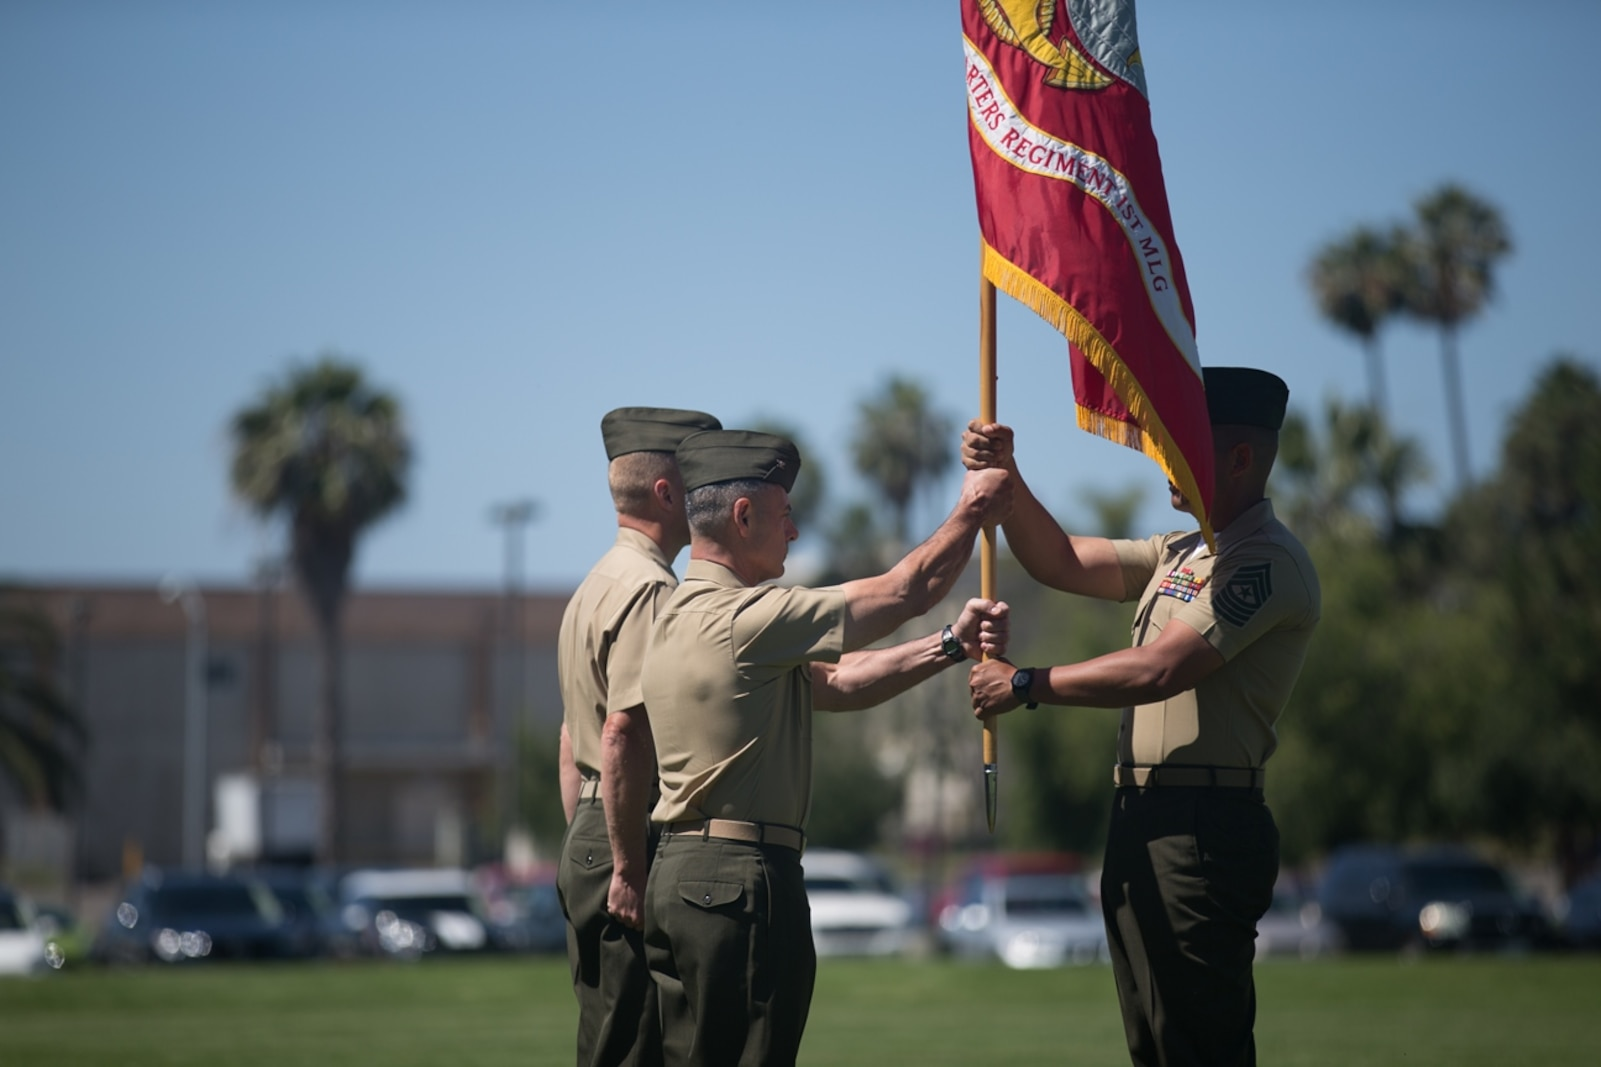 U.S. Marine Col. Phillip N. Frietze (center) exchanges the regimental colors with Col. James R. Hensein (left) during the Headquarters Regiment, 1st Marine Logistics Group, change of command ceremony on Camp Pendleton, Calif., June 15, 2017. The ceremony included marching of the colors, passing of the regimental colors, presenting Col. Frietze his away and closing remarks from the oncoming and off going personnel as well as the 1st Marine Logistics Group Commanding General, Brig. Gen. David A. Ottignon. (U.S. Marine Corps photo by Lance Cpl. Timothy Shoemaker)